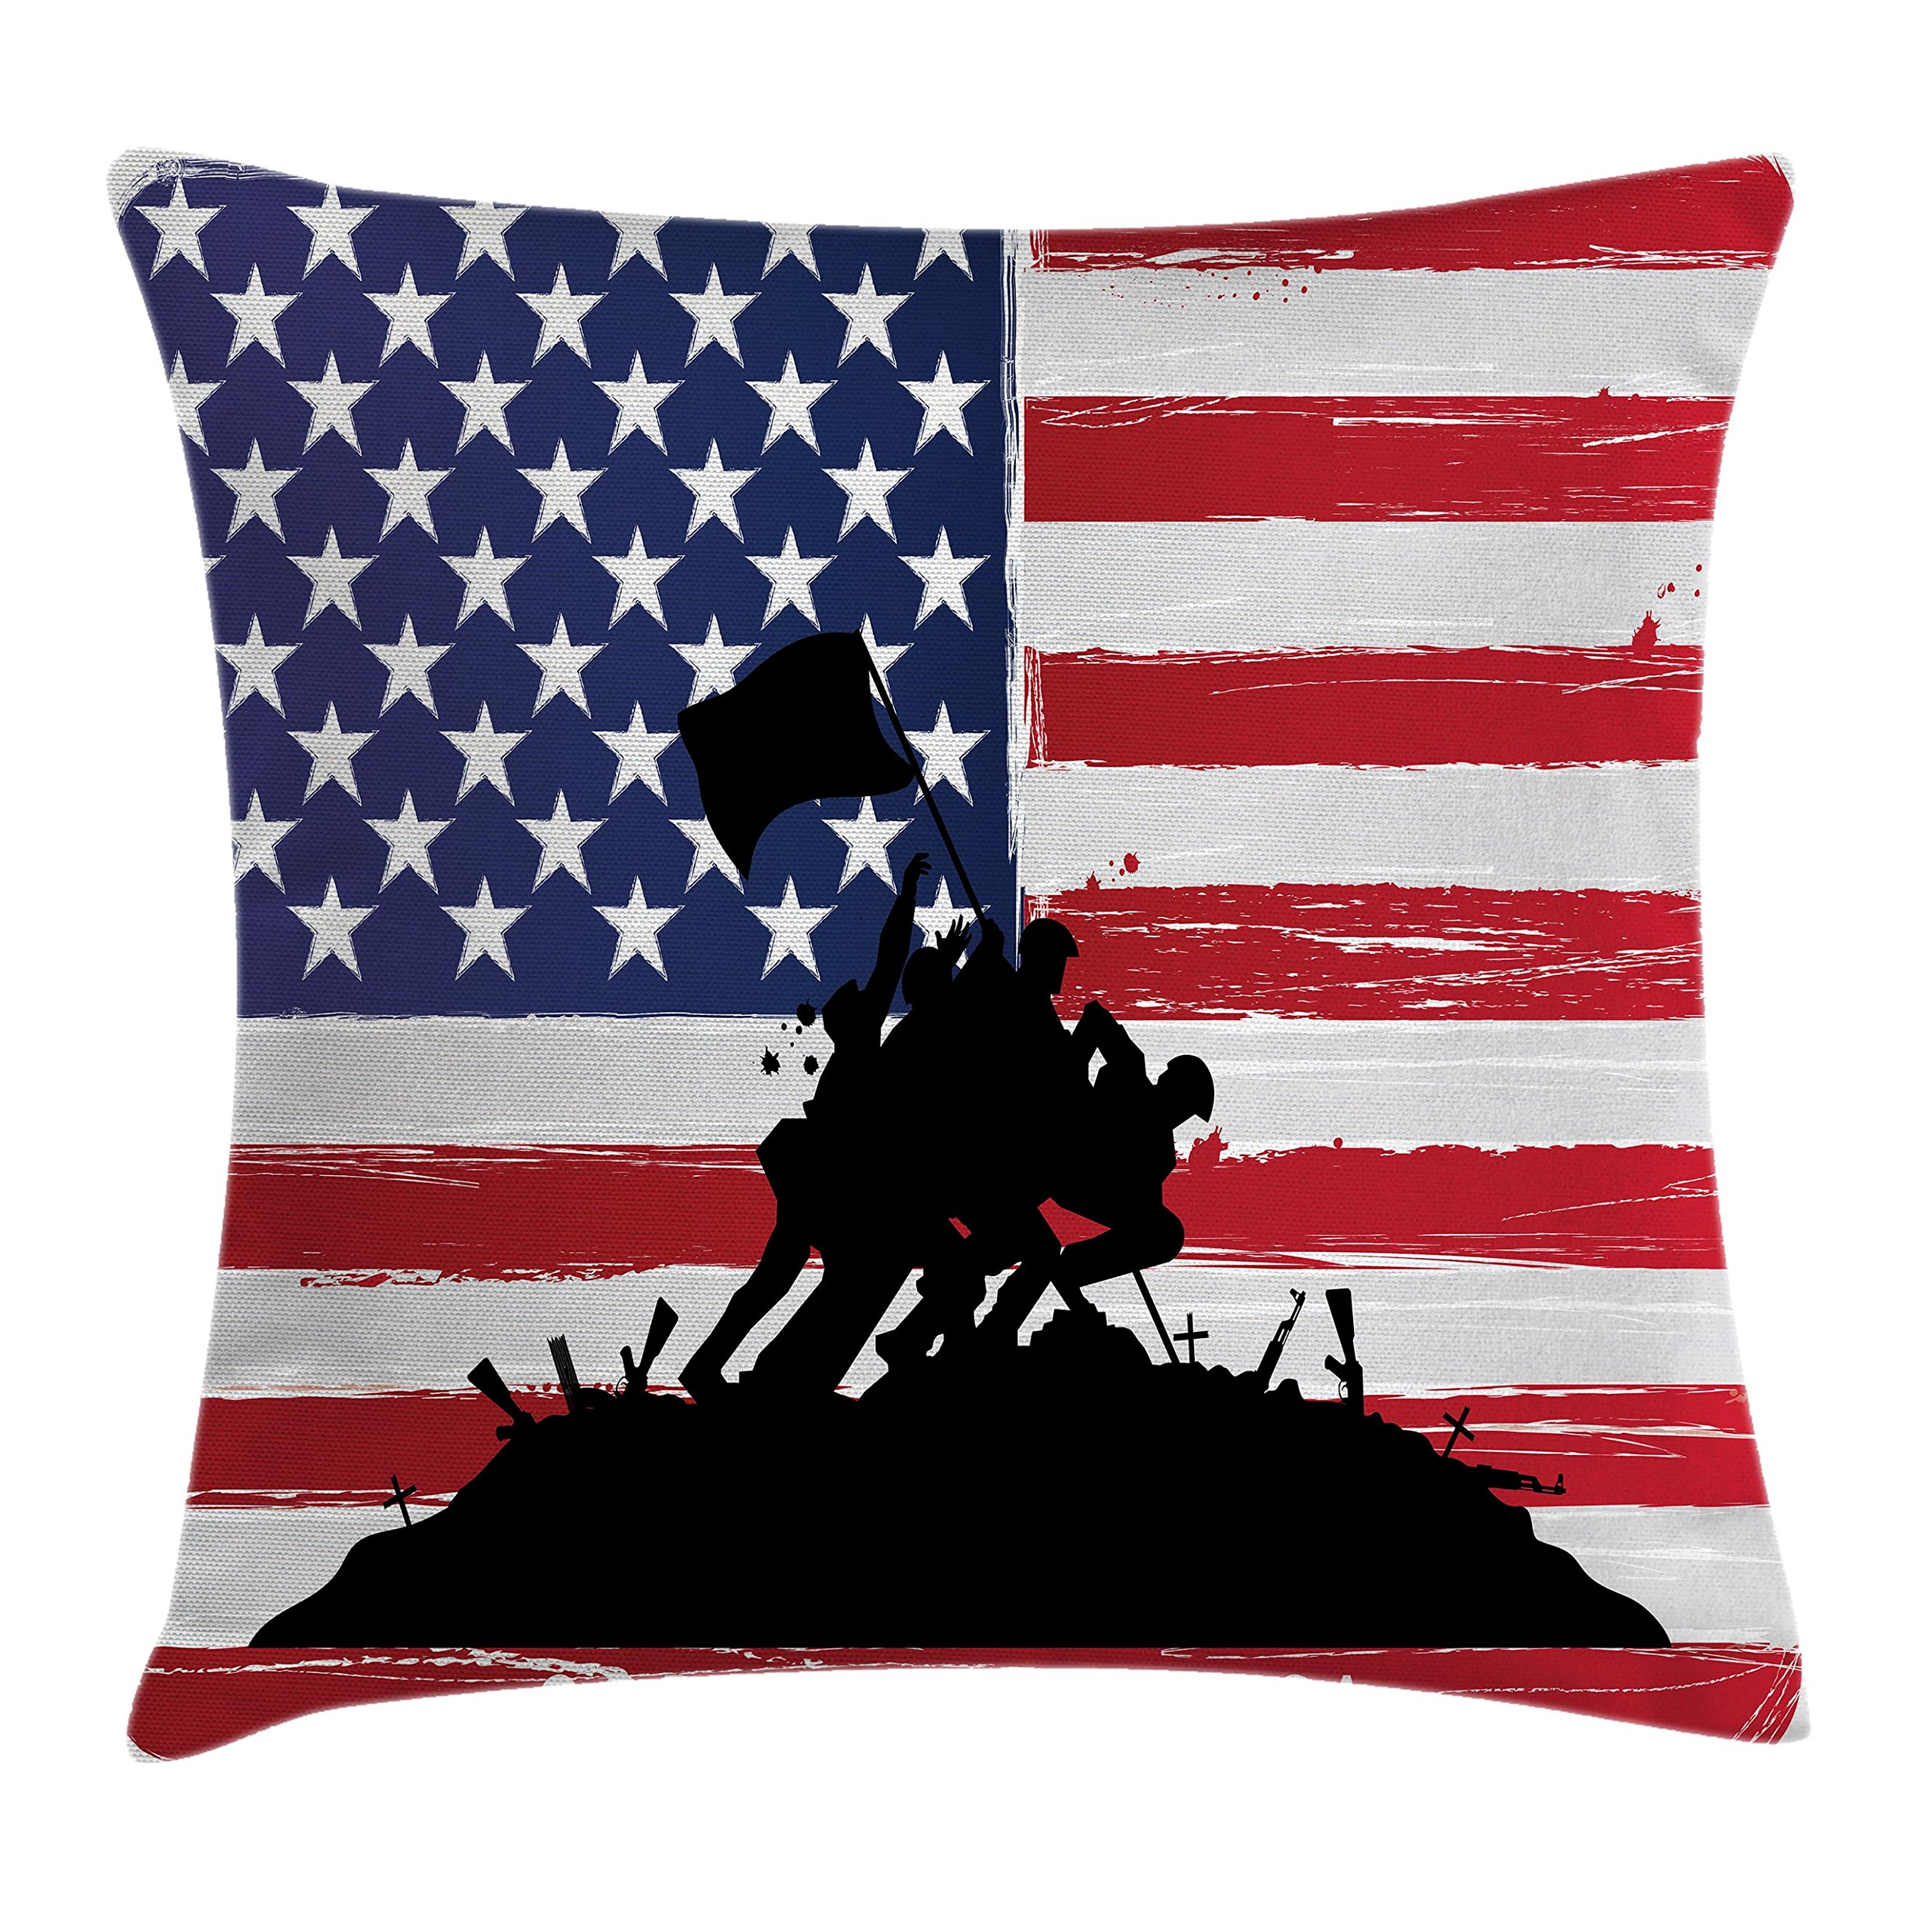 Ambesonne American Throw Pillow Cushion Cover, Bless America Silhouettes of American USA Flag Background Valor Patriot Theme, Decorative Square Accent Pillow Case, 16 X 16 Inches, Black and Red